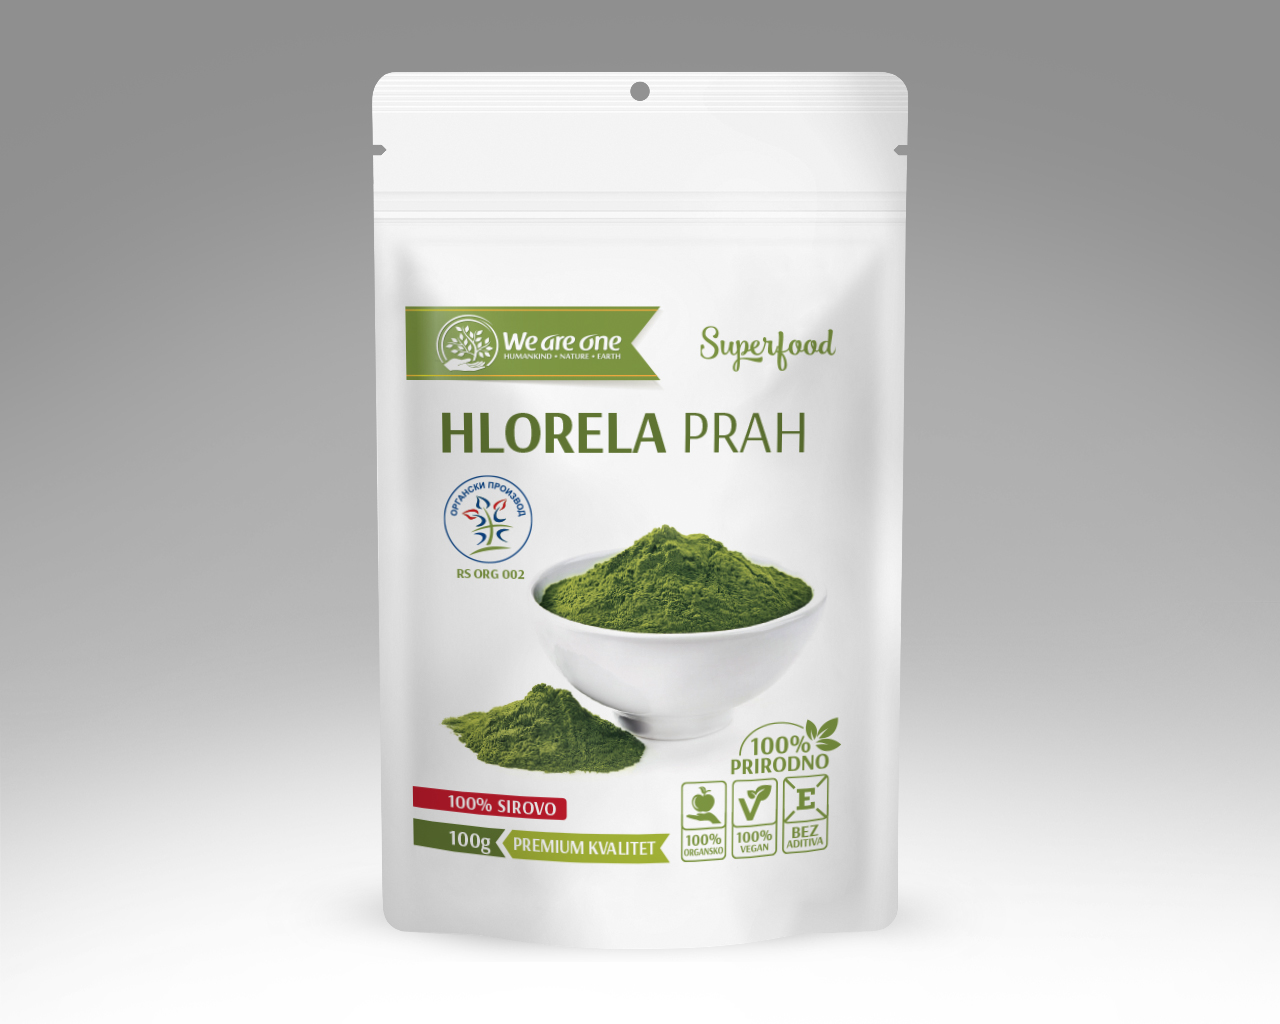 HLORELA PRAH ORGANIC, WE ARE ONE 100G